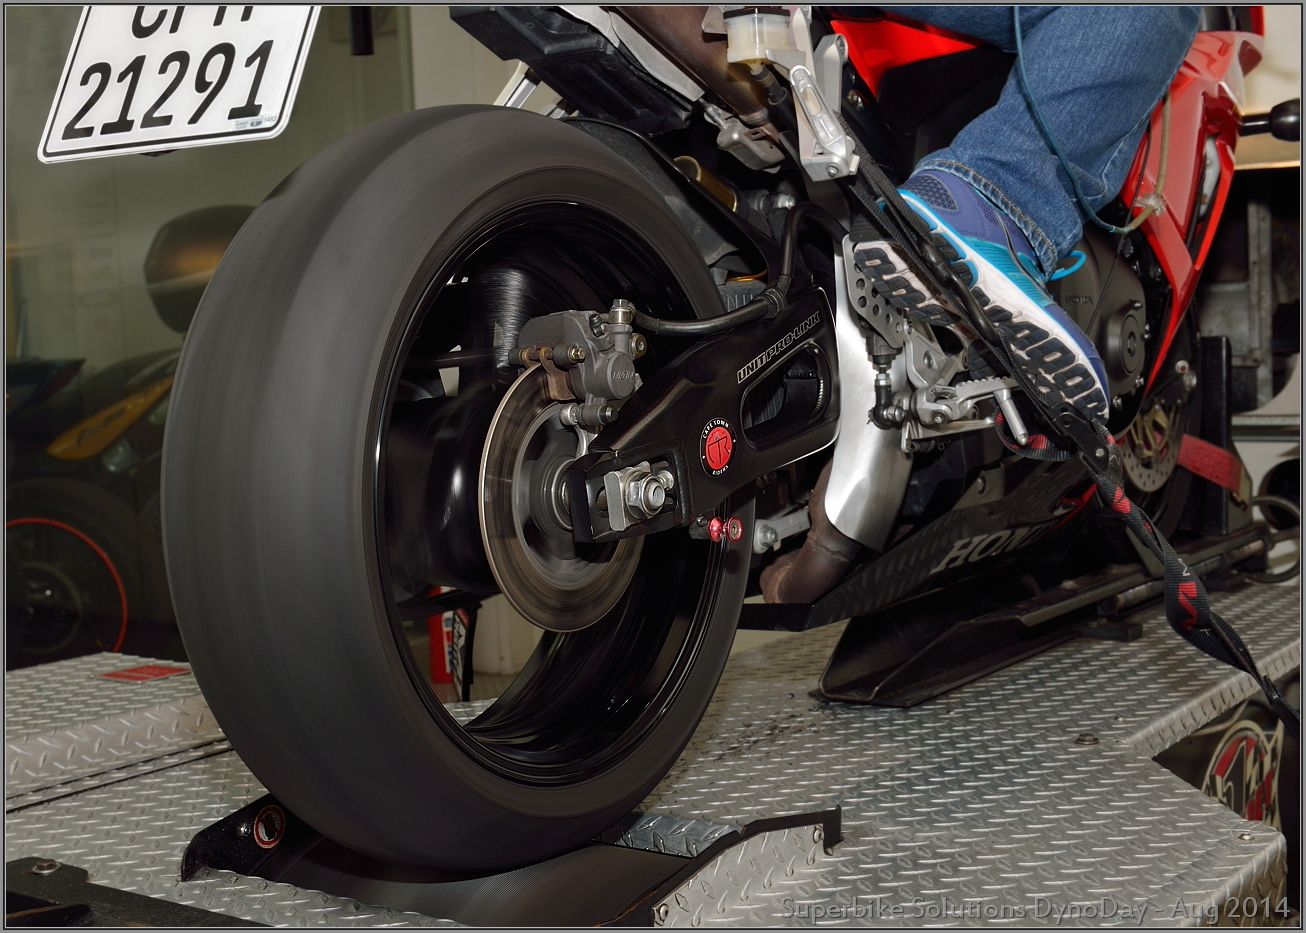 Superbike Solutions 2014 Cbr1000rr Aftermarket Exhaust And Dyno Tuning Two Brothers Honda 2012 Silver Series Slip On System With M 2 Carbon Fiber Canister However Before He Can Start Has Do Things That I Know Of The First Is To Inactivate Native Lambda Sensor Replacing It A Resistor